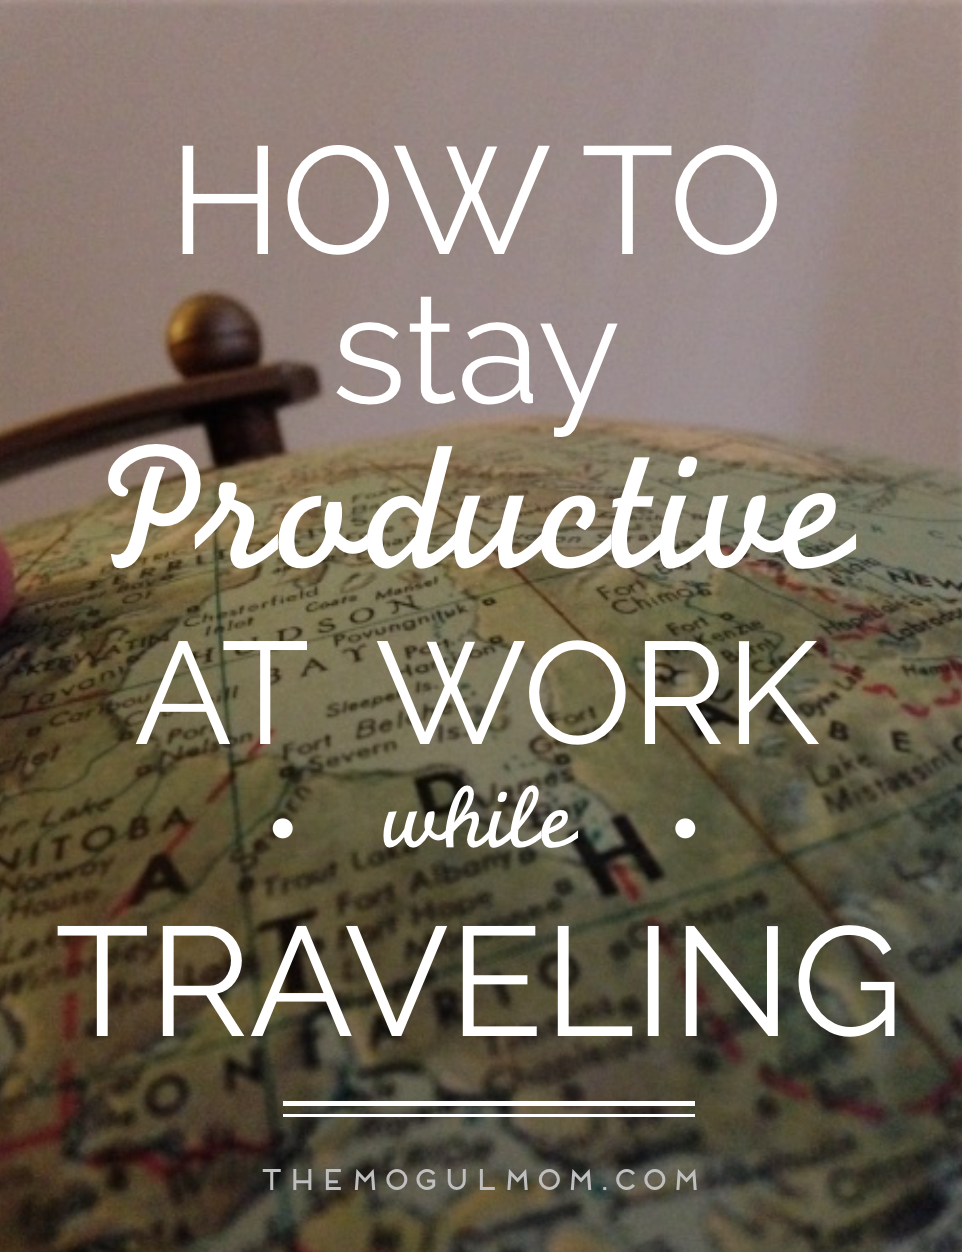 How to Stay Productive at Work While Traveling